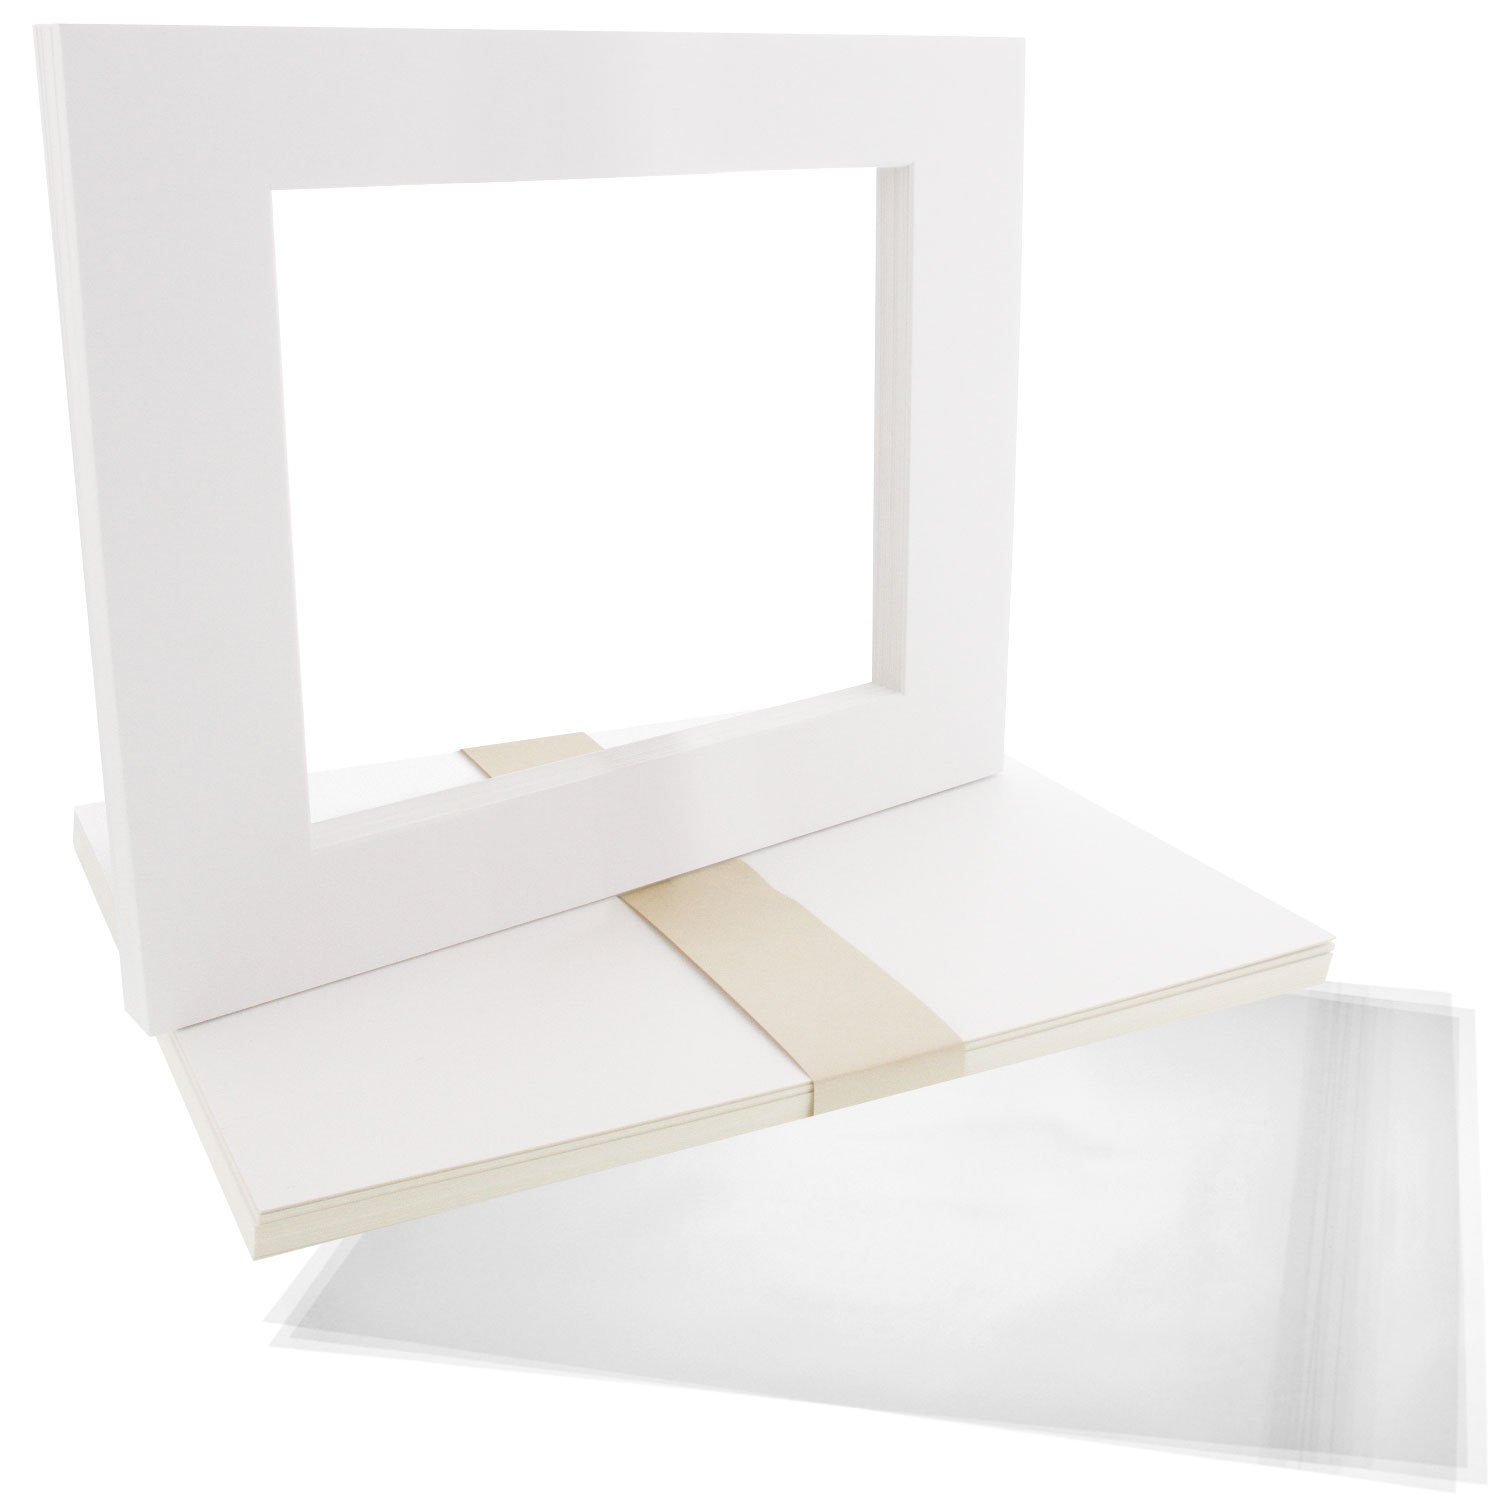 US Art Supply Art Mats High Quality Acid-Free Pre-Cut 8x10 White Picture Mat Matte Sets. Includes a Pack of 10 White Core Bevel Cut Mattes for 5x7 Photos, Pack of 10 Backers & 10 Clear Sleeve Bags by US Art Supply